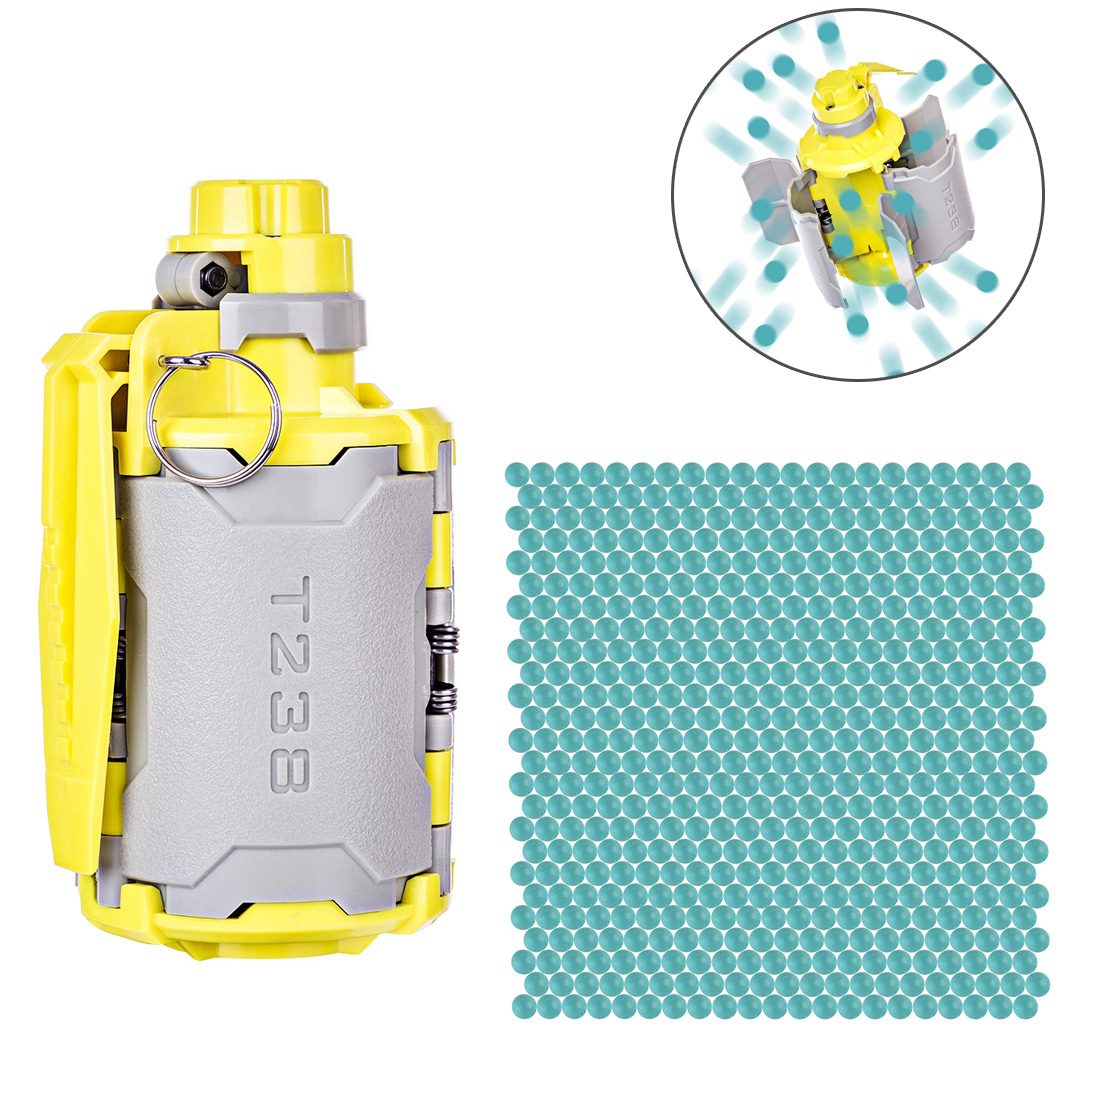 Suprer Deals T238 V2 Large Capacity Toy Set With Time-Delayed Function For Nerf Gel Ball BBs Airsoft Wargame - Grey + YellowSuprer Deals T238 V2 Large Capacity Toy Set With Time-Delayed Function For Nerf Gel Ball BBs Airsoft Wargame - Grey + Yellow